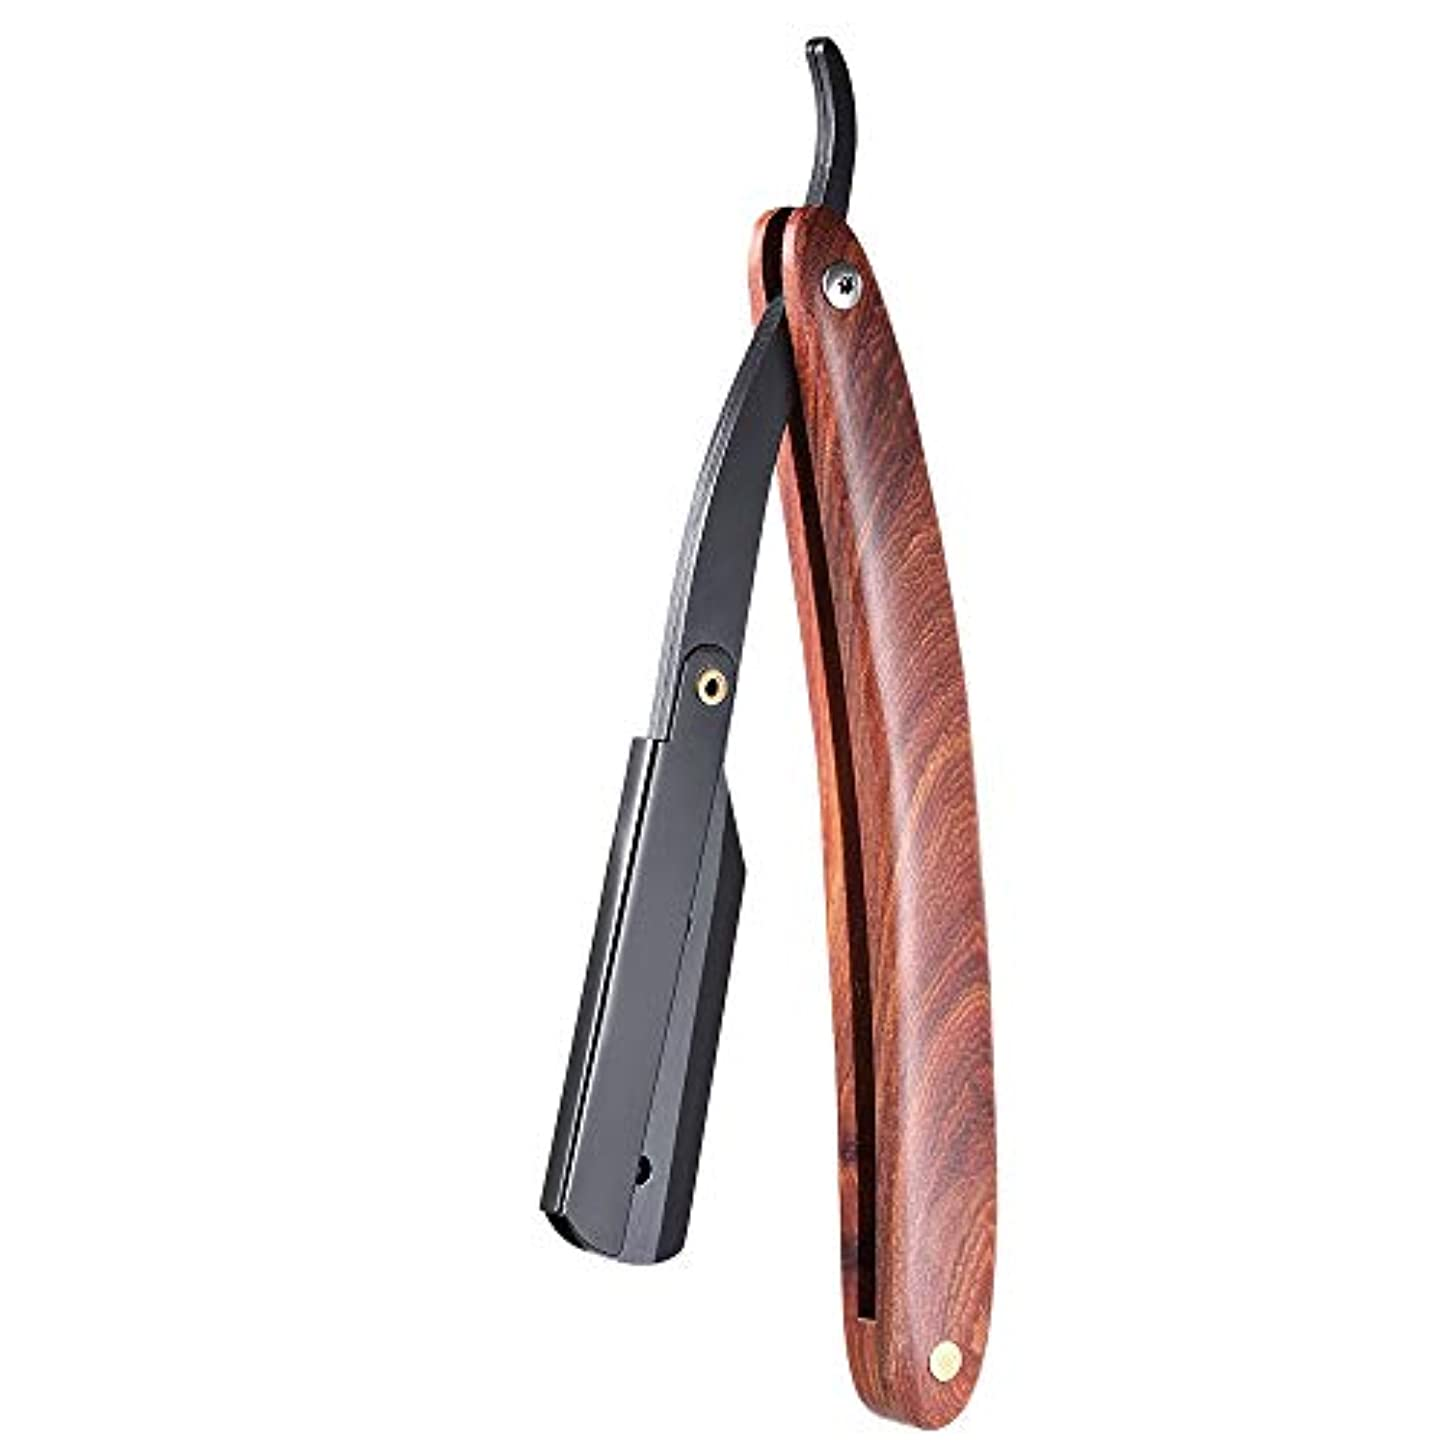 本質的に徴収科学Men Shaving Straight Edge Razor Stainless Steel Manual Razor Wooden Handle Folding Shaving Knife Shave Beard Cutter...